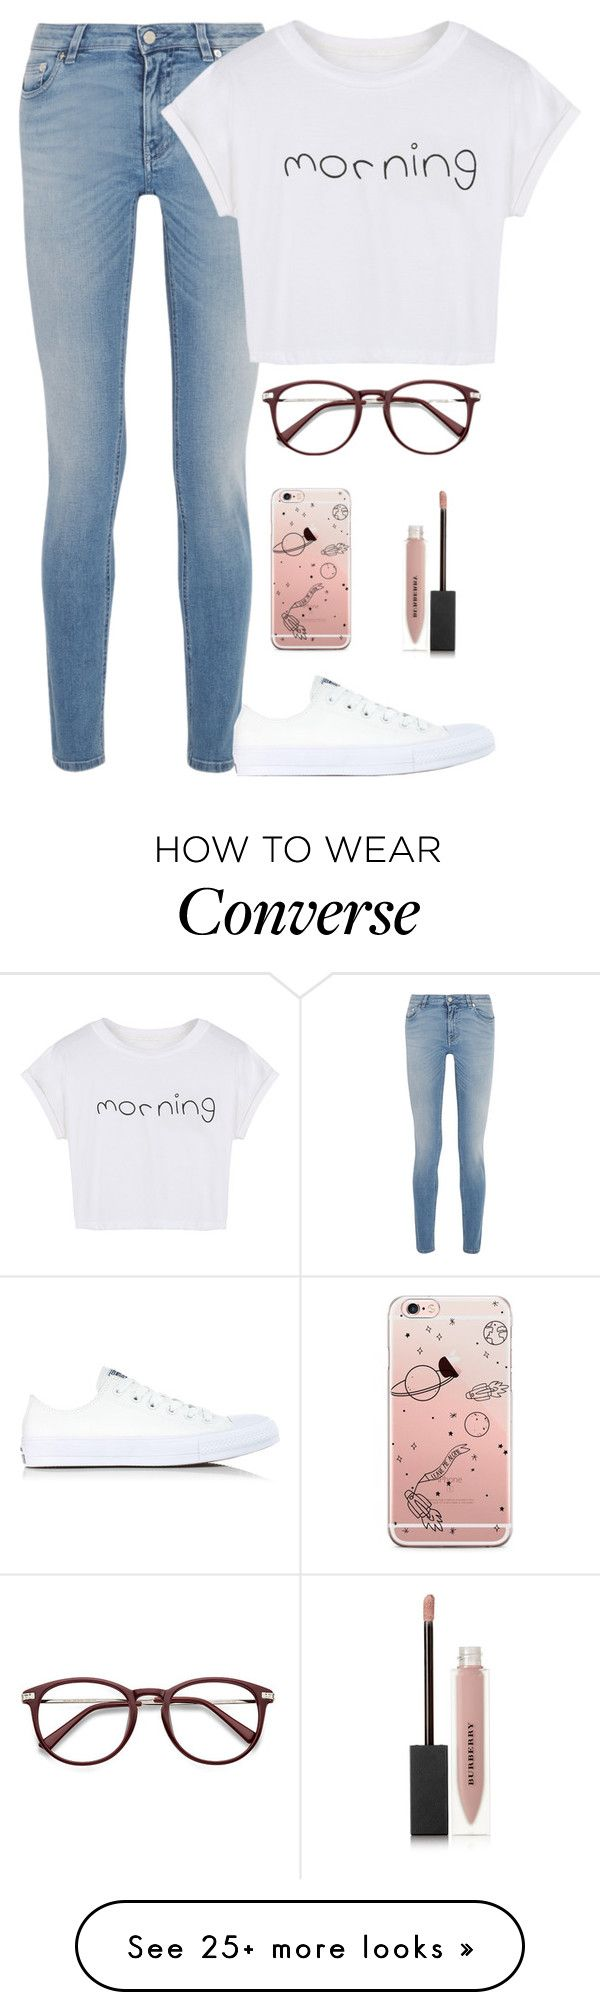 """morning"" by pikenapayne on Polyvore featuring Givenchy, WithChic, Converse and Burberry"